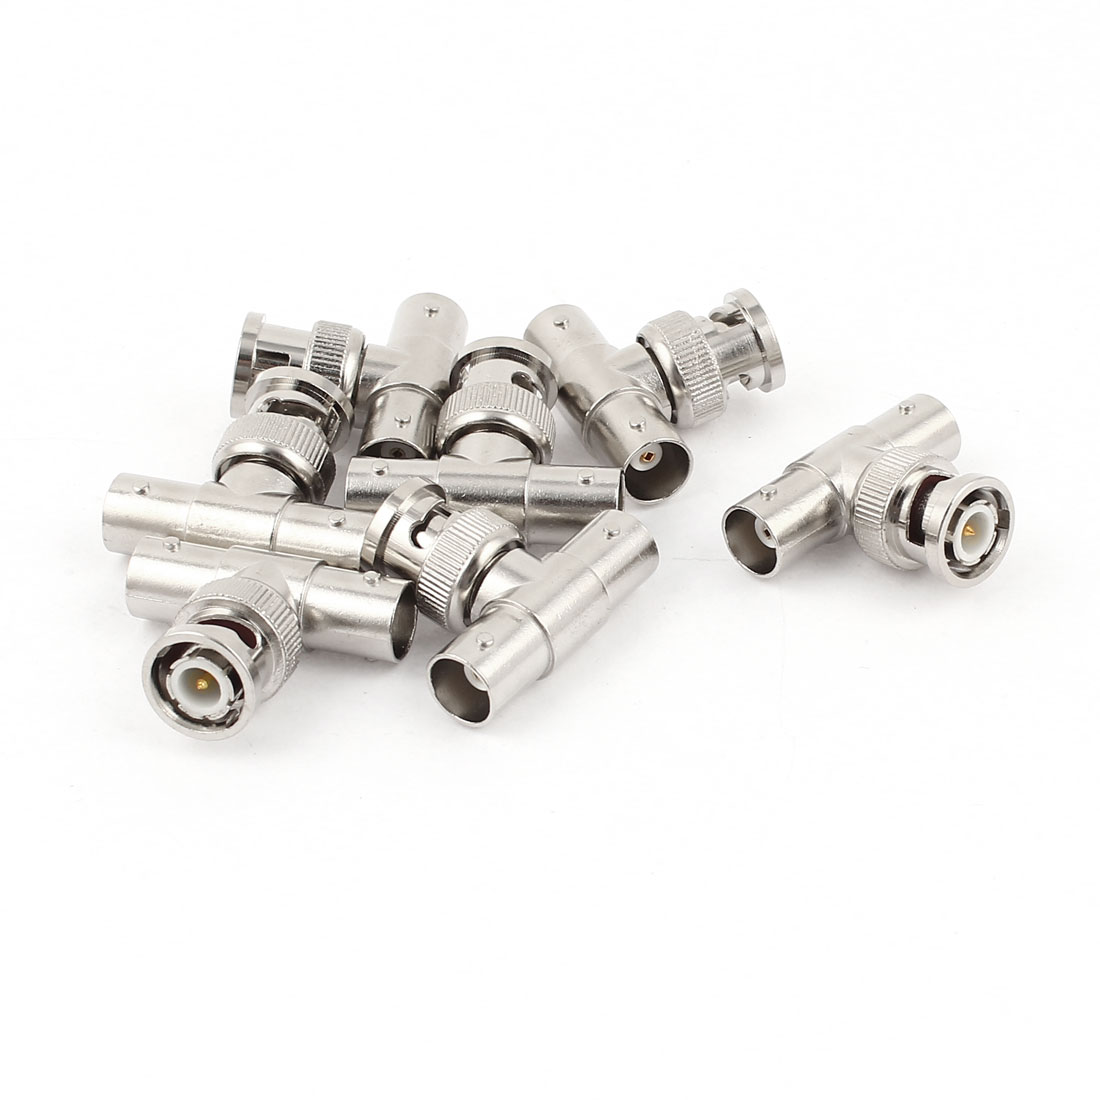 7pcs Silver Tone Metal BNC Male to 2 BNC Female T Connector Adapter